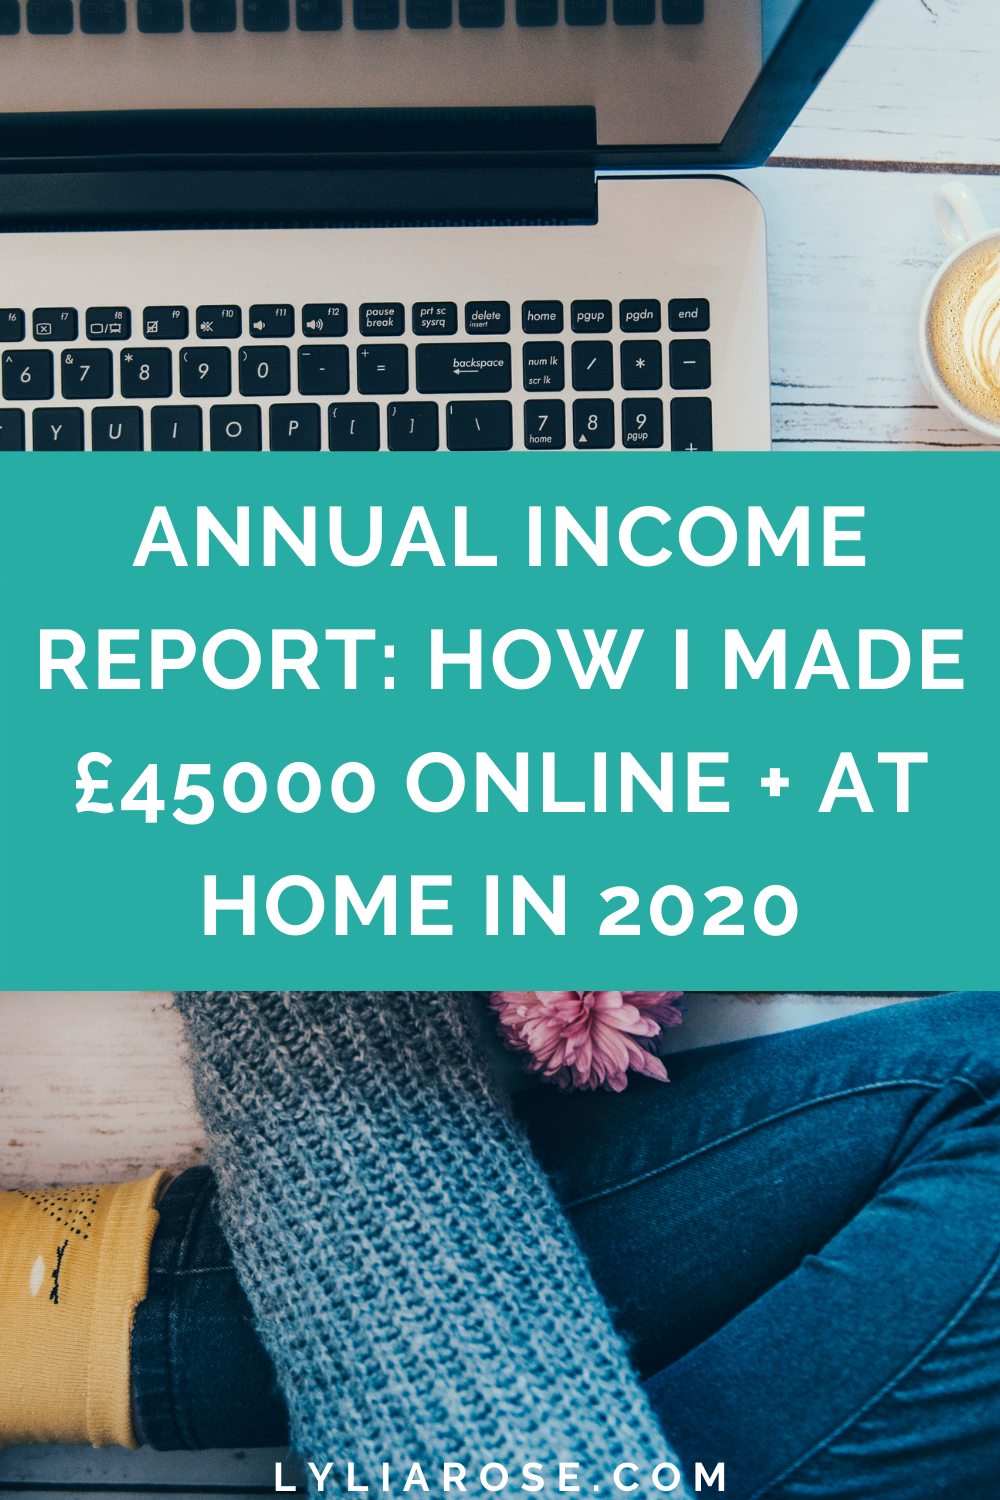 Annual income report_ how I made £45000 online + at home in 2020 (1)